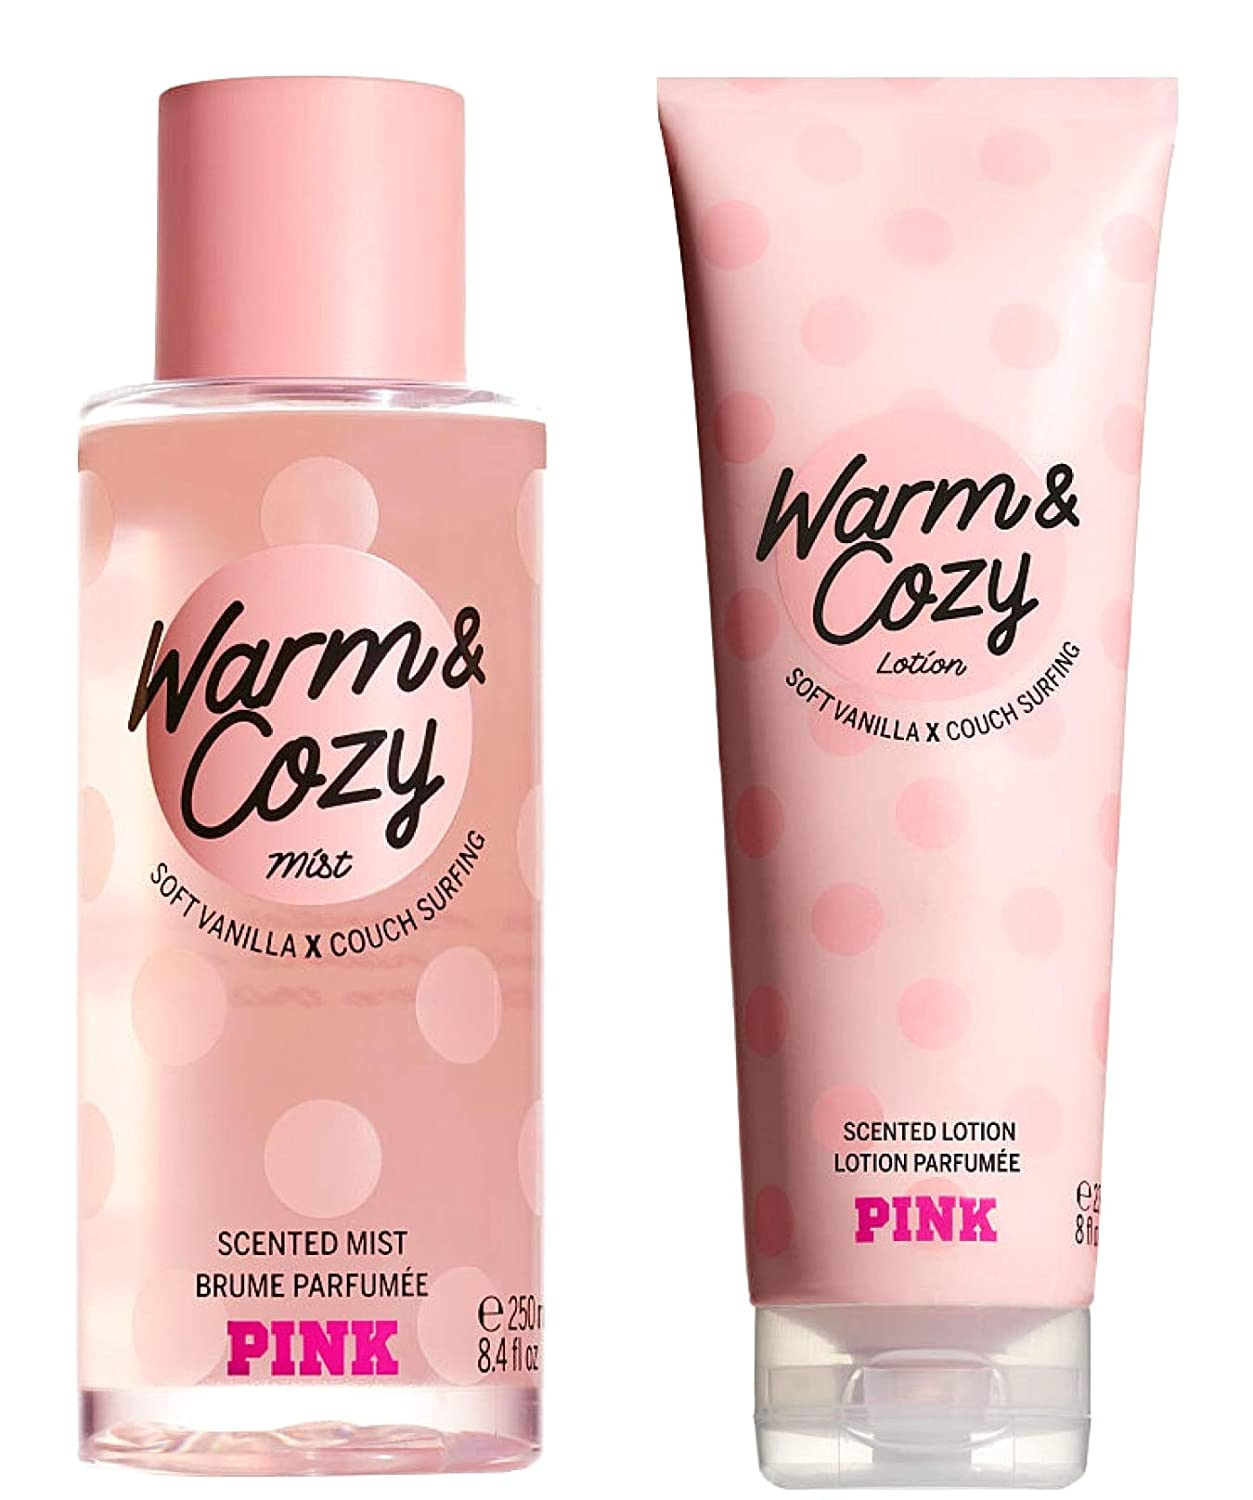 Victoria Secret Pink Warm and Cozy Scented Mist and Lotion Set (2PC) - 8.4 fl oz & 8 fl oz